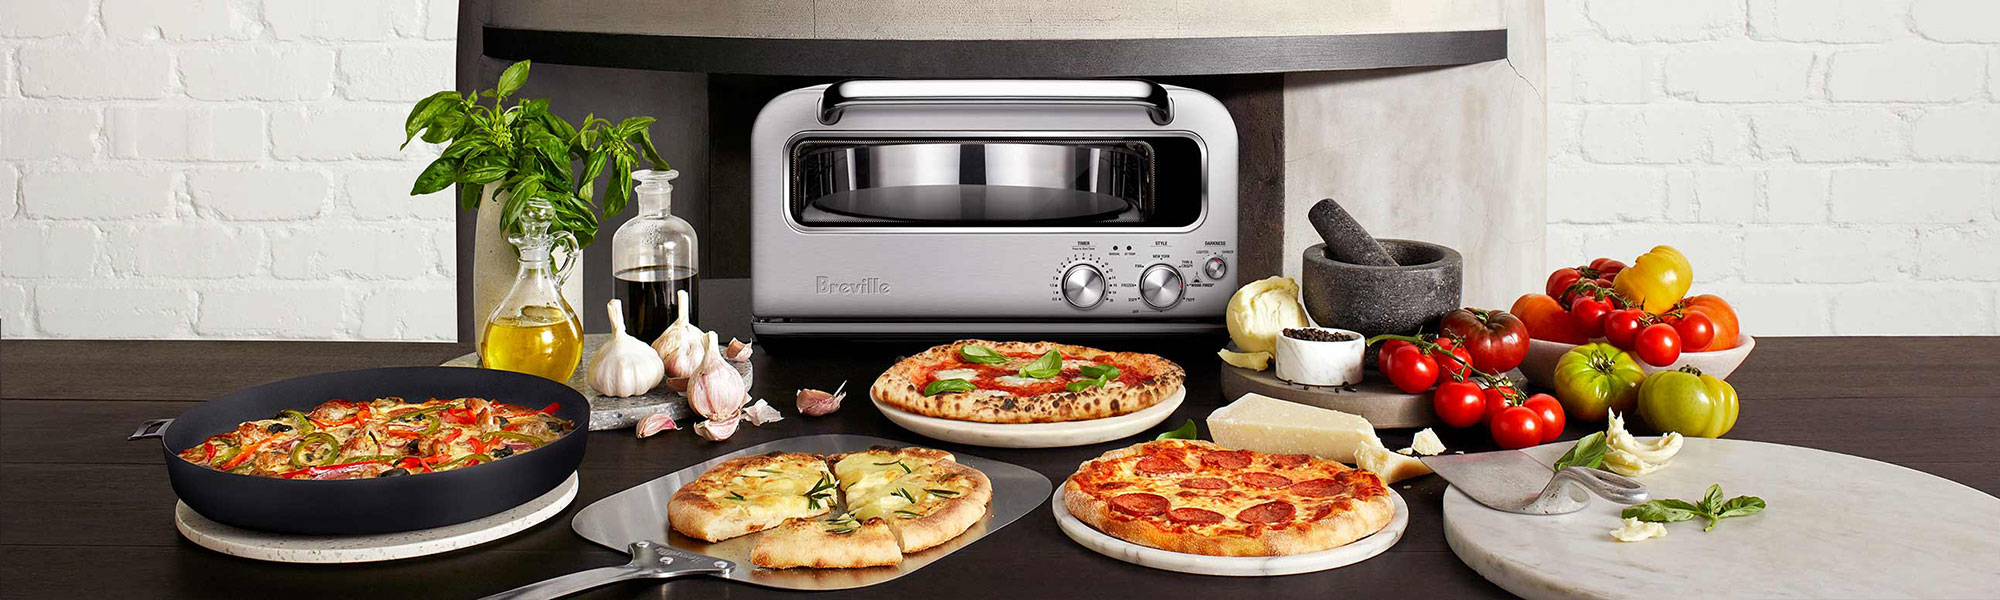 the Smart Oven Pizzaiolo Pizza maker in Brushed Stainless Steel